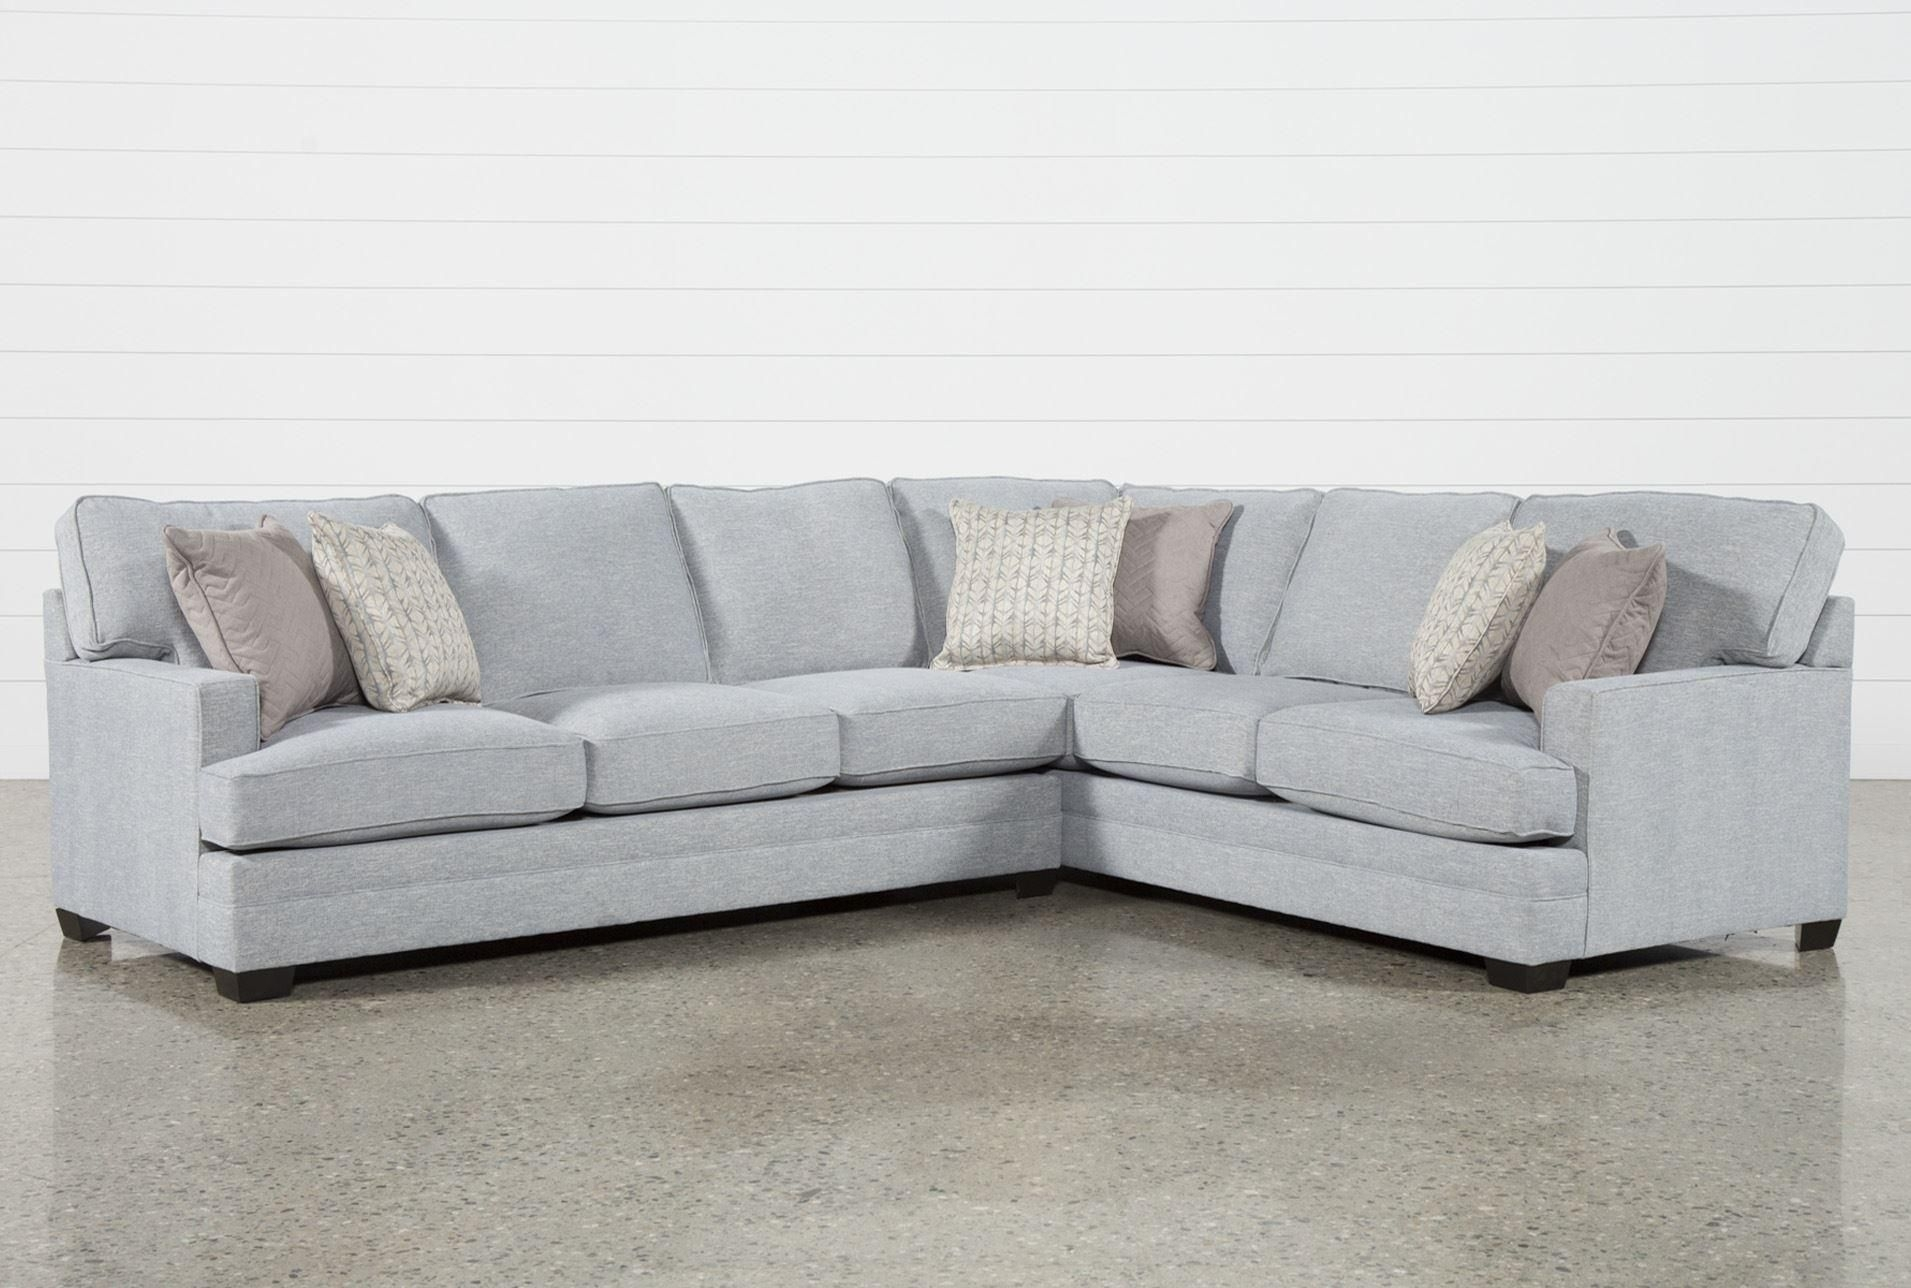 Josephine 2 Piece Sectional W/laf Sofa | For The Home | Pinterest within Mcdade Graphite 2 Piece Sectionals With Raf Chaise (Image 9 of 30)